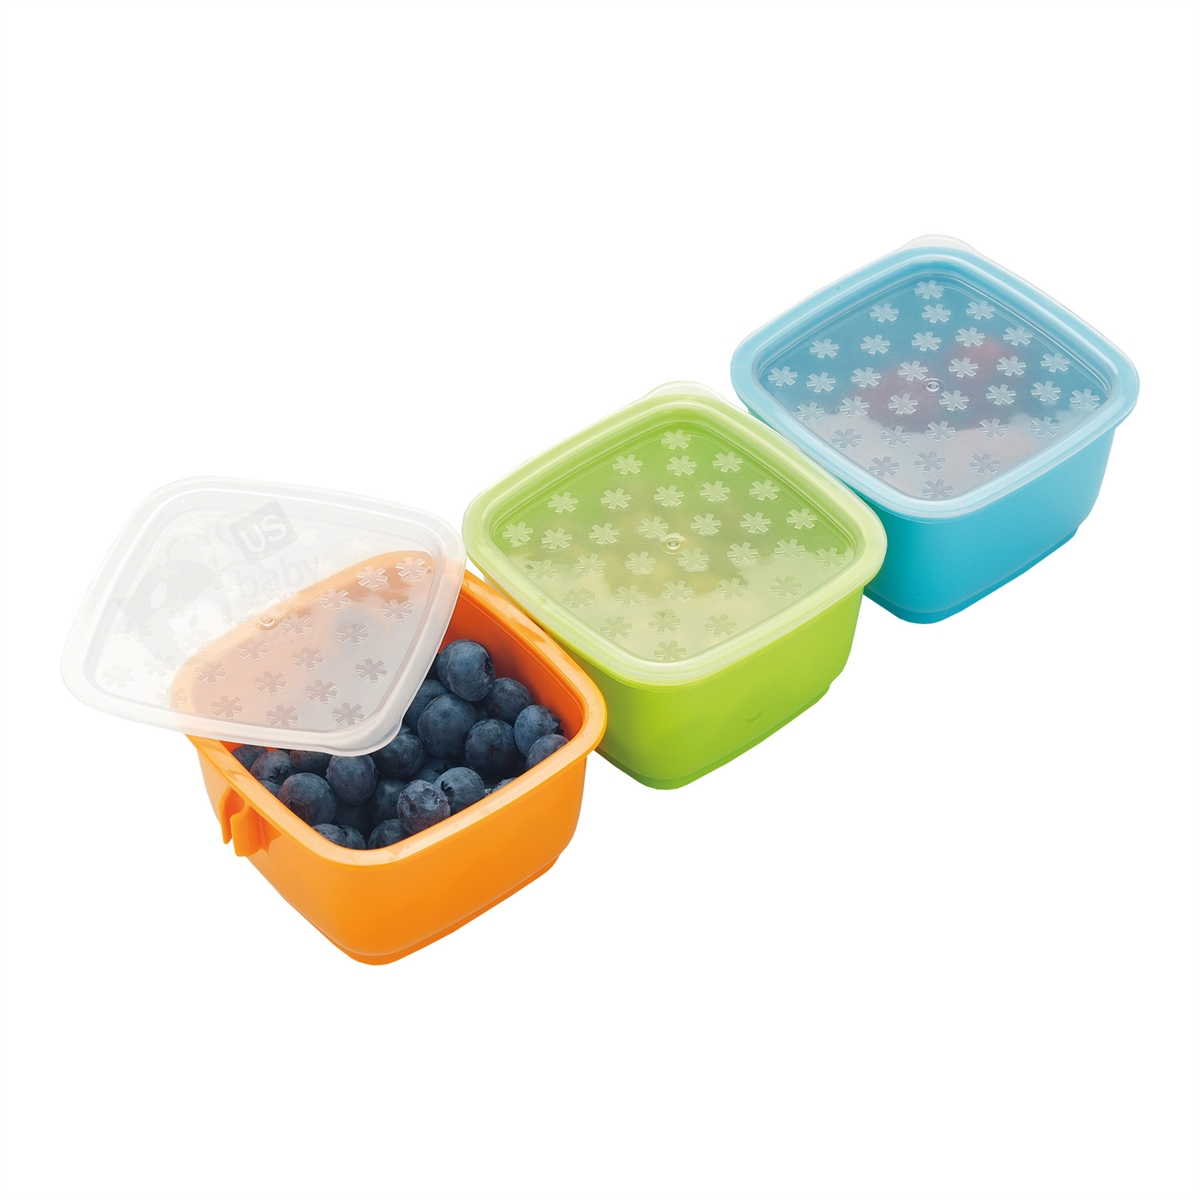 Clix Mealtime Container 3 Pc Set Skip Hop